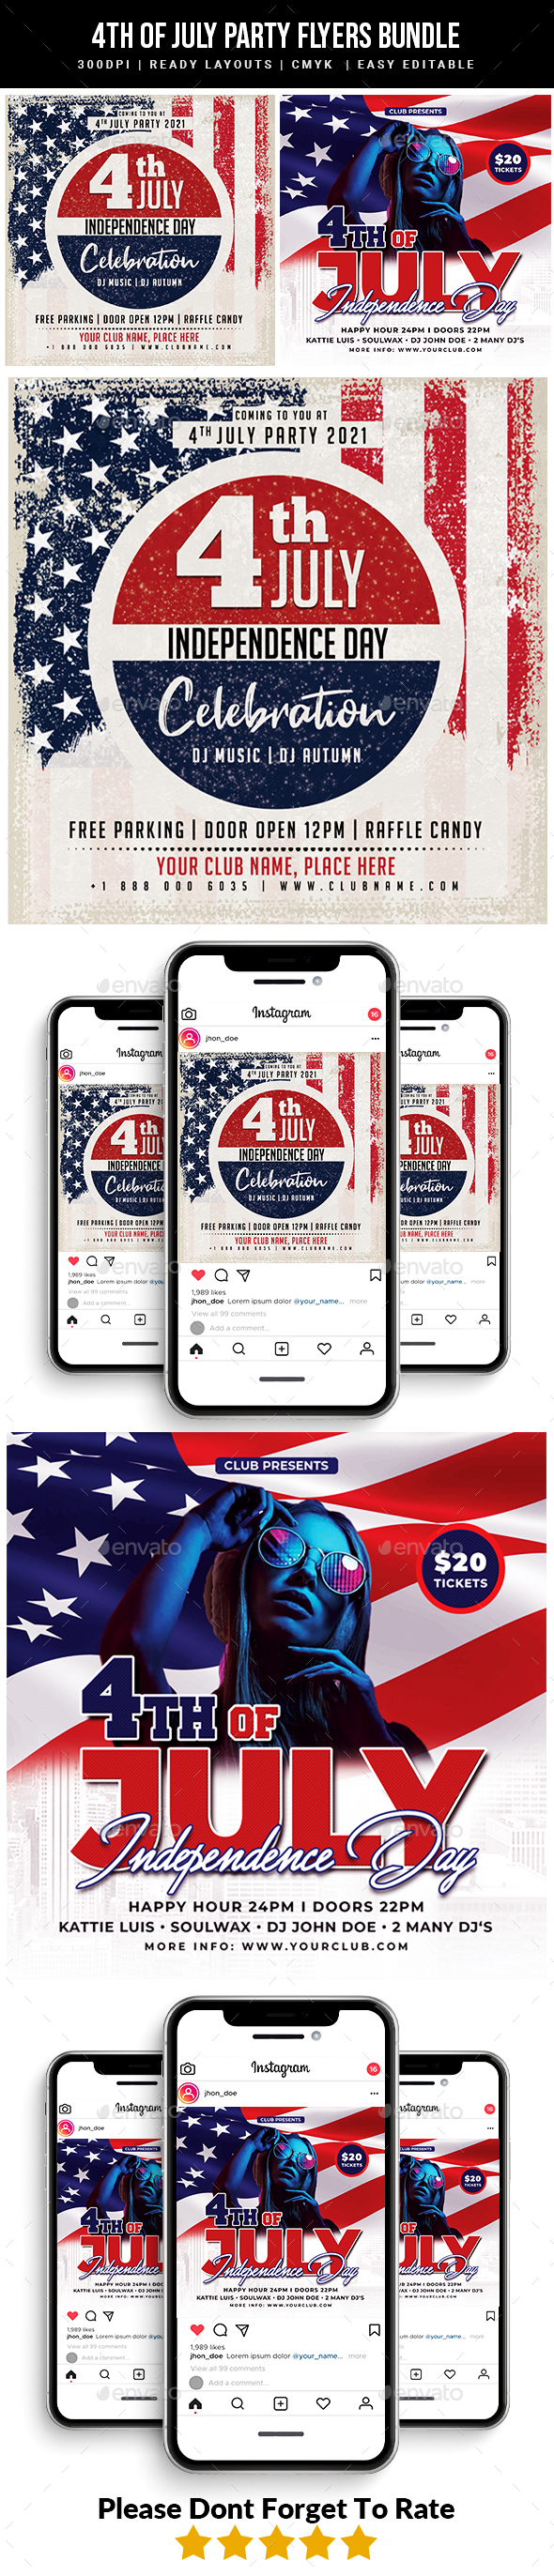 4th of July Party Flyers bundle